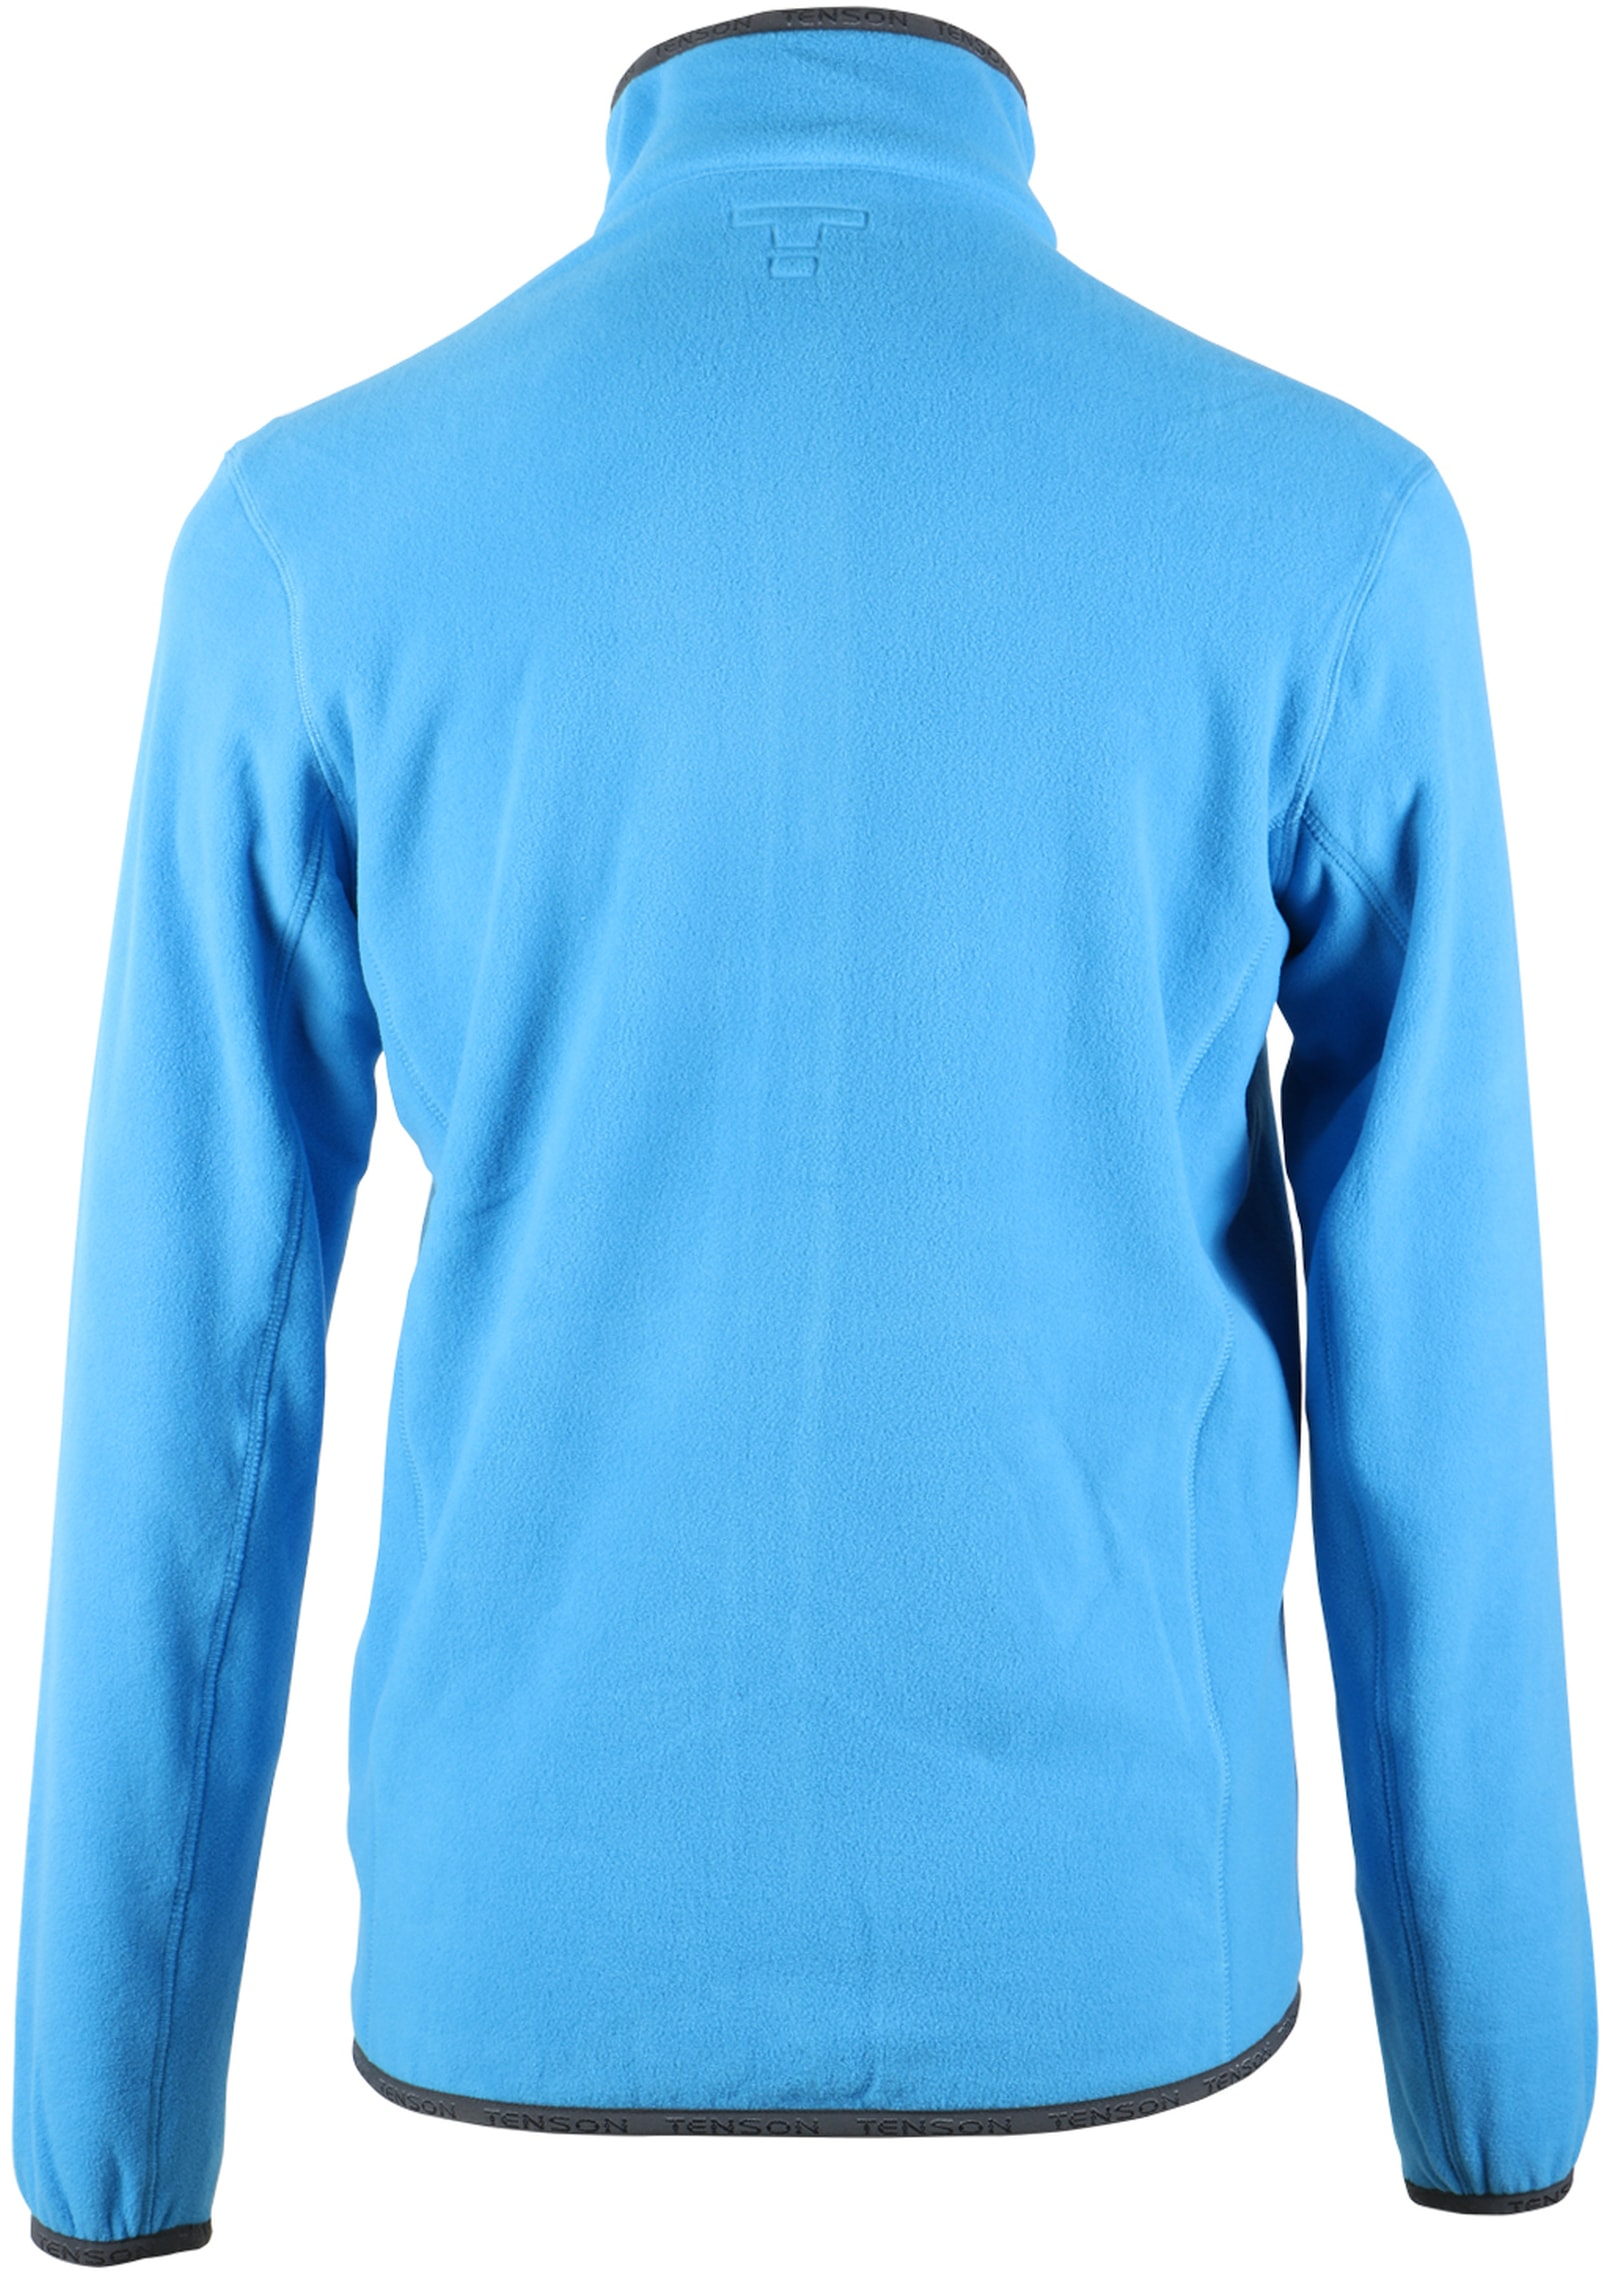 Tenson Fleece Cardigan Miller Blue foto 4